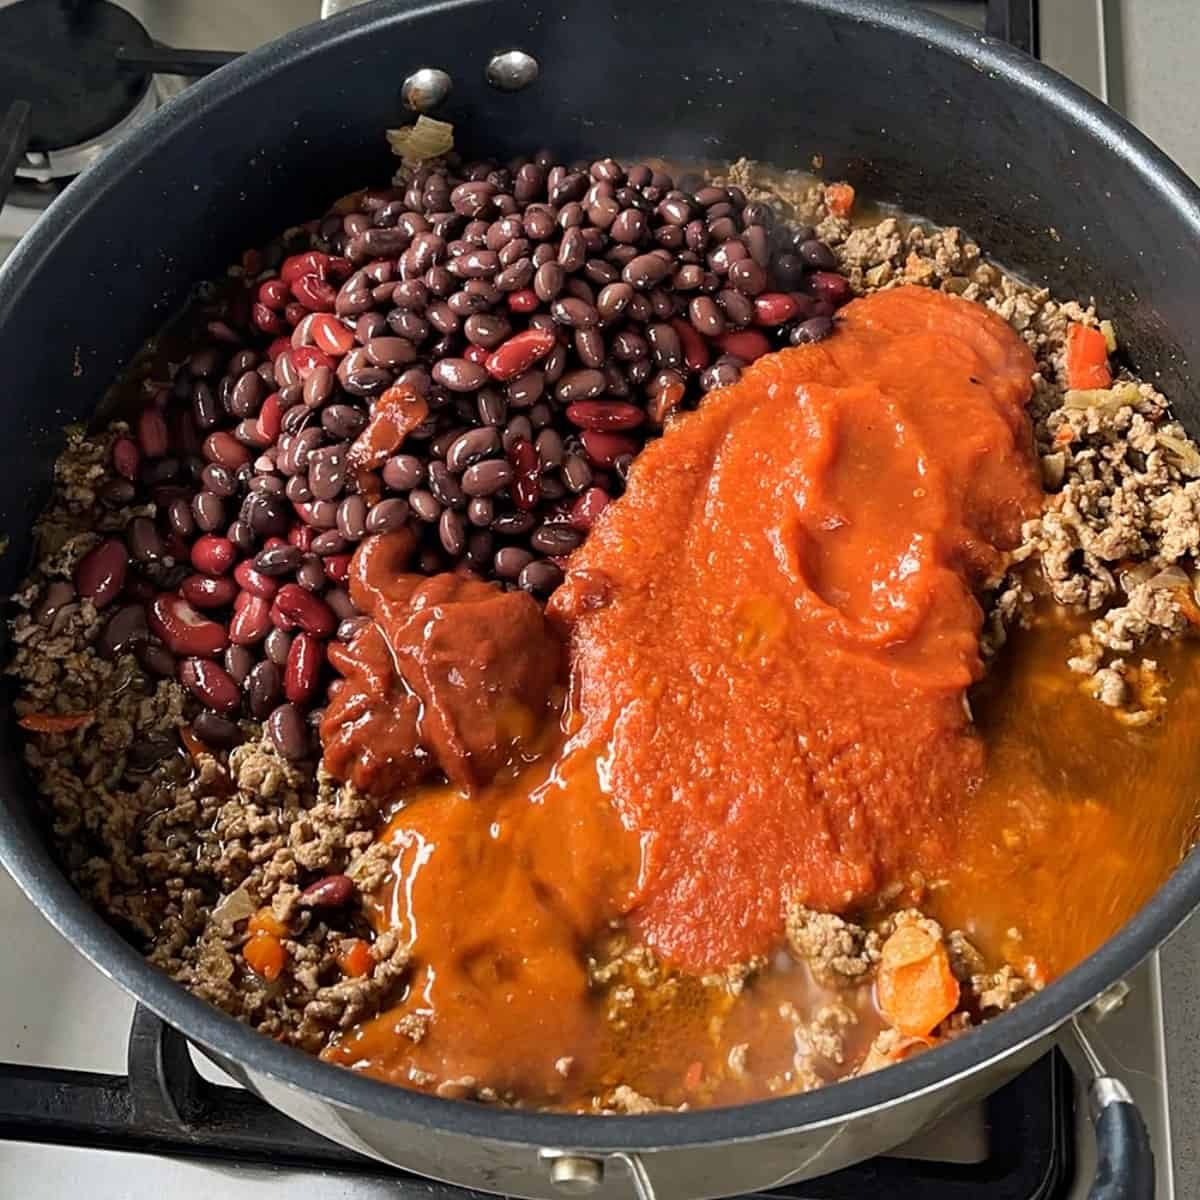 The process of making chilli con carne in a frying pan.